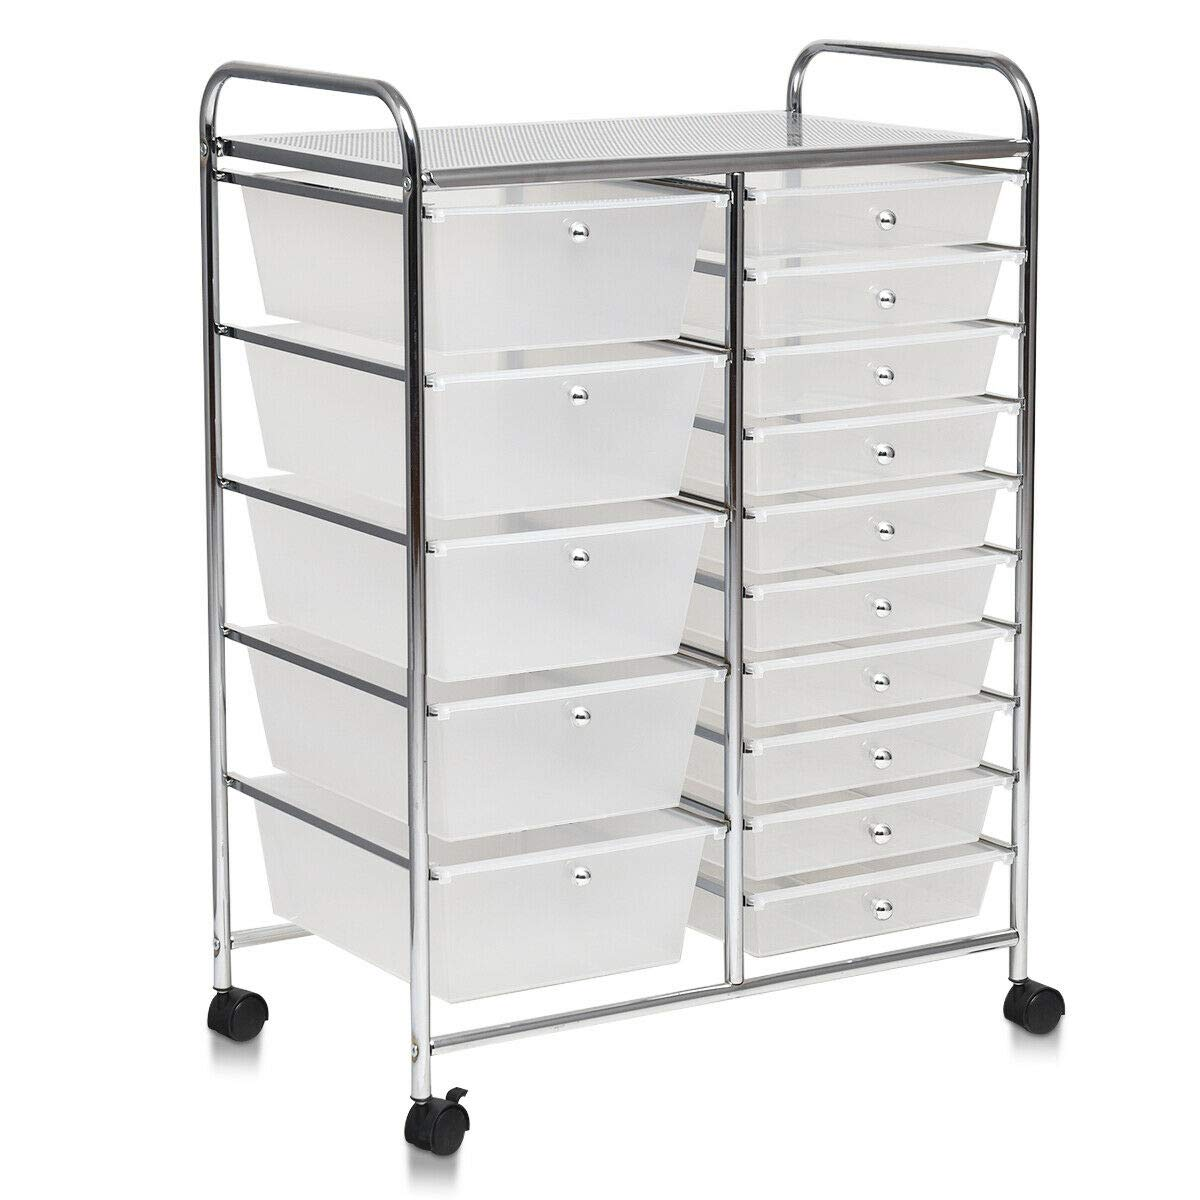 Portable 24.5''L Rolling Drawer Cart Storage Utility Shelve Organizer w/ 15Drawers with Ebook